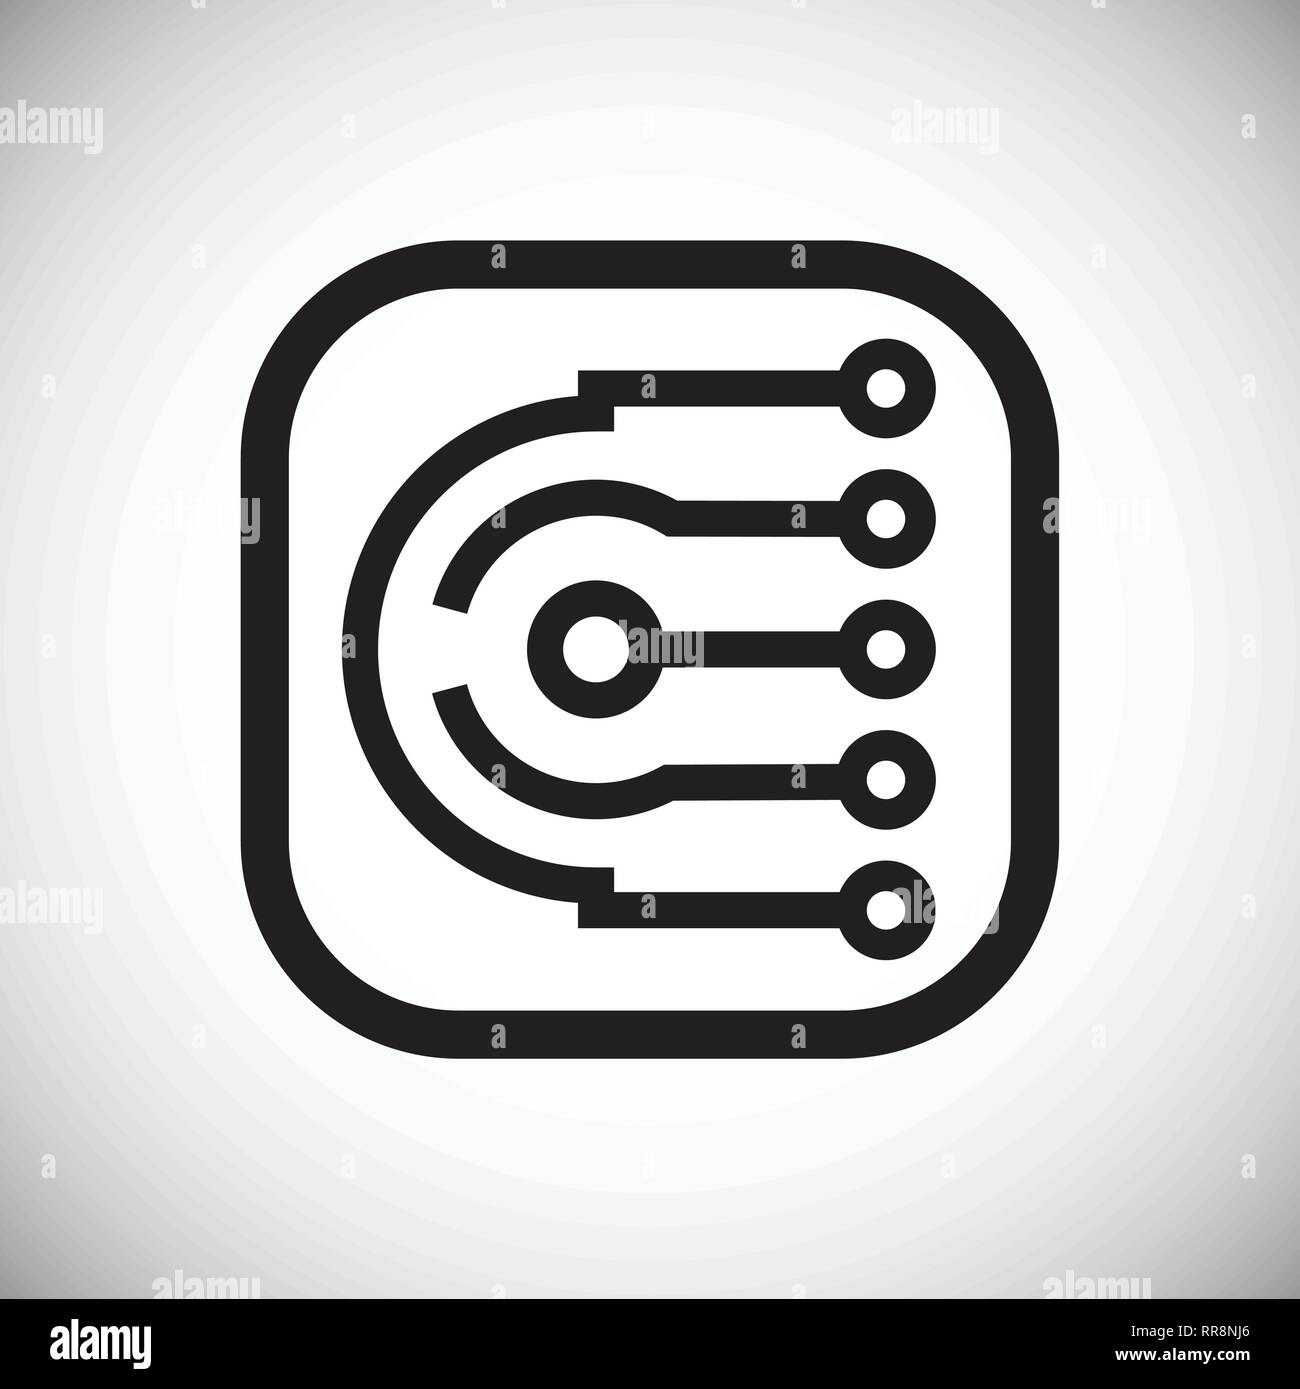 Electronic circuit icon on white background for graphic and